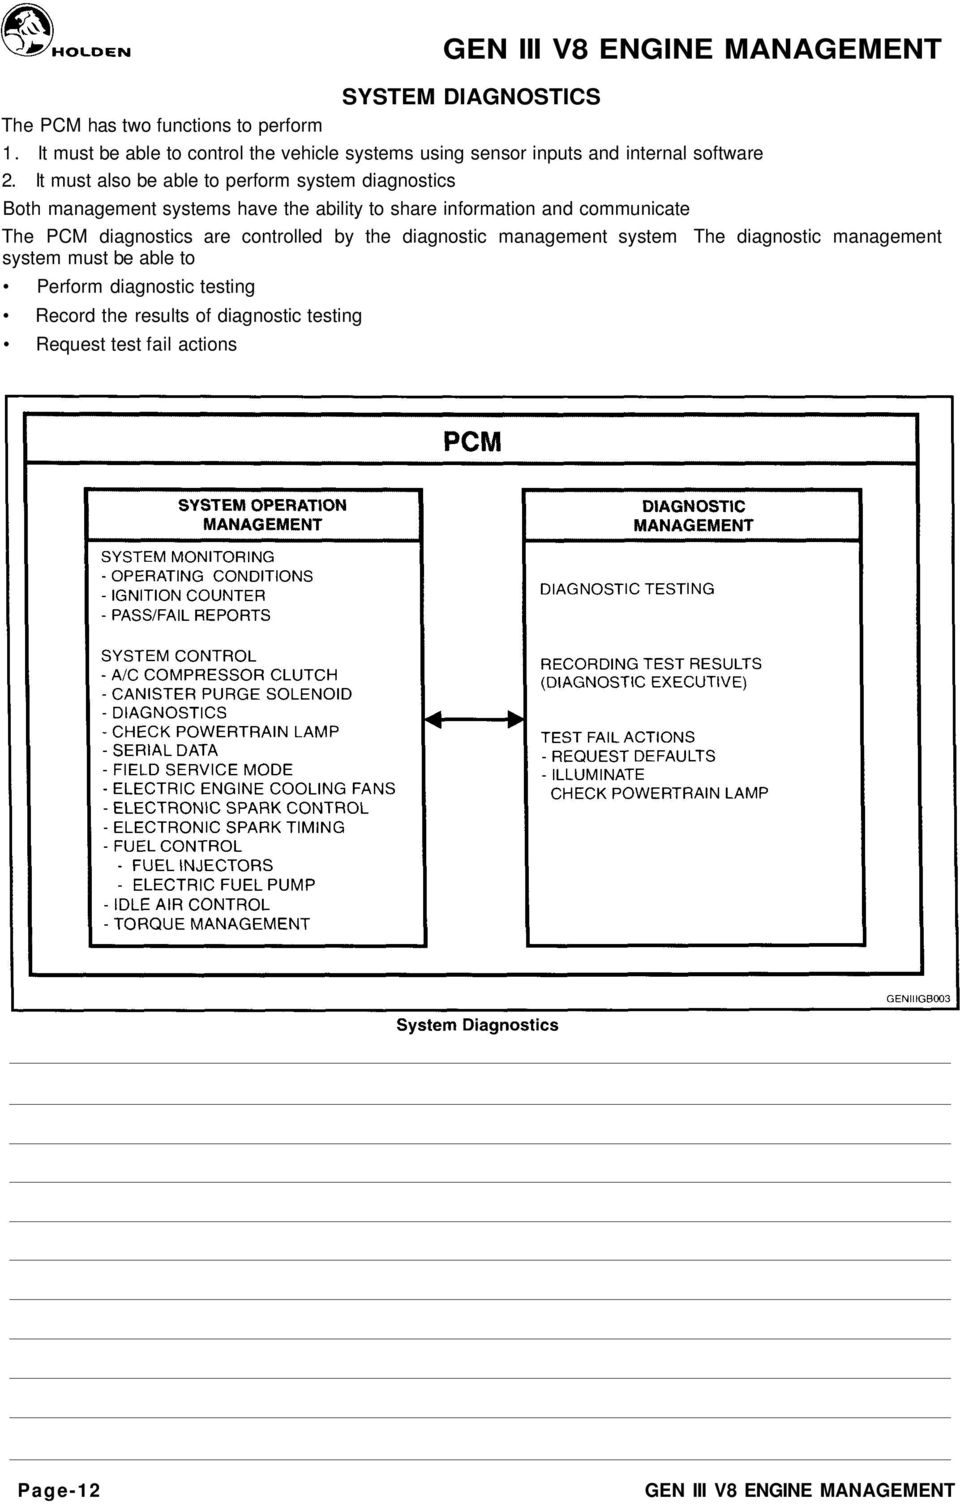 Holden Gen Iii V8 Engine Management Pdf 304 Starter Motor Wiring Diagram It Must Also Be Able To Perform System Diagnostics Both Systems Have The Ability